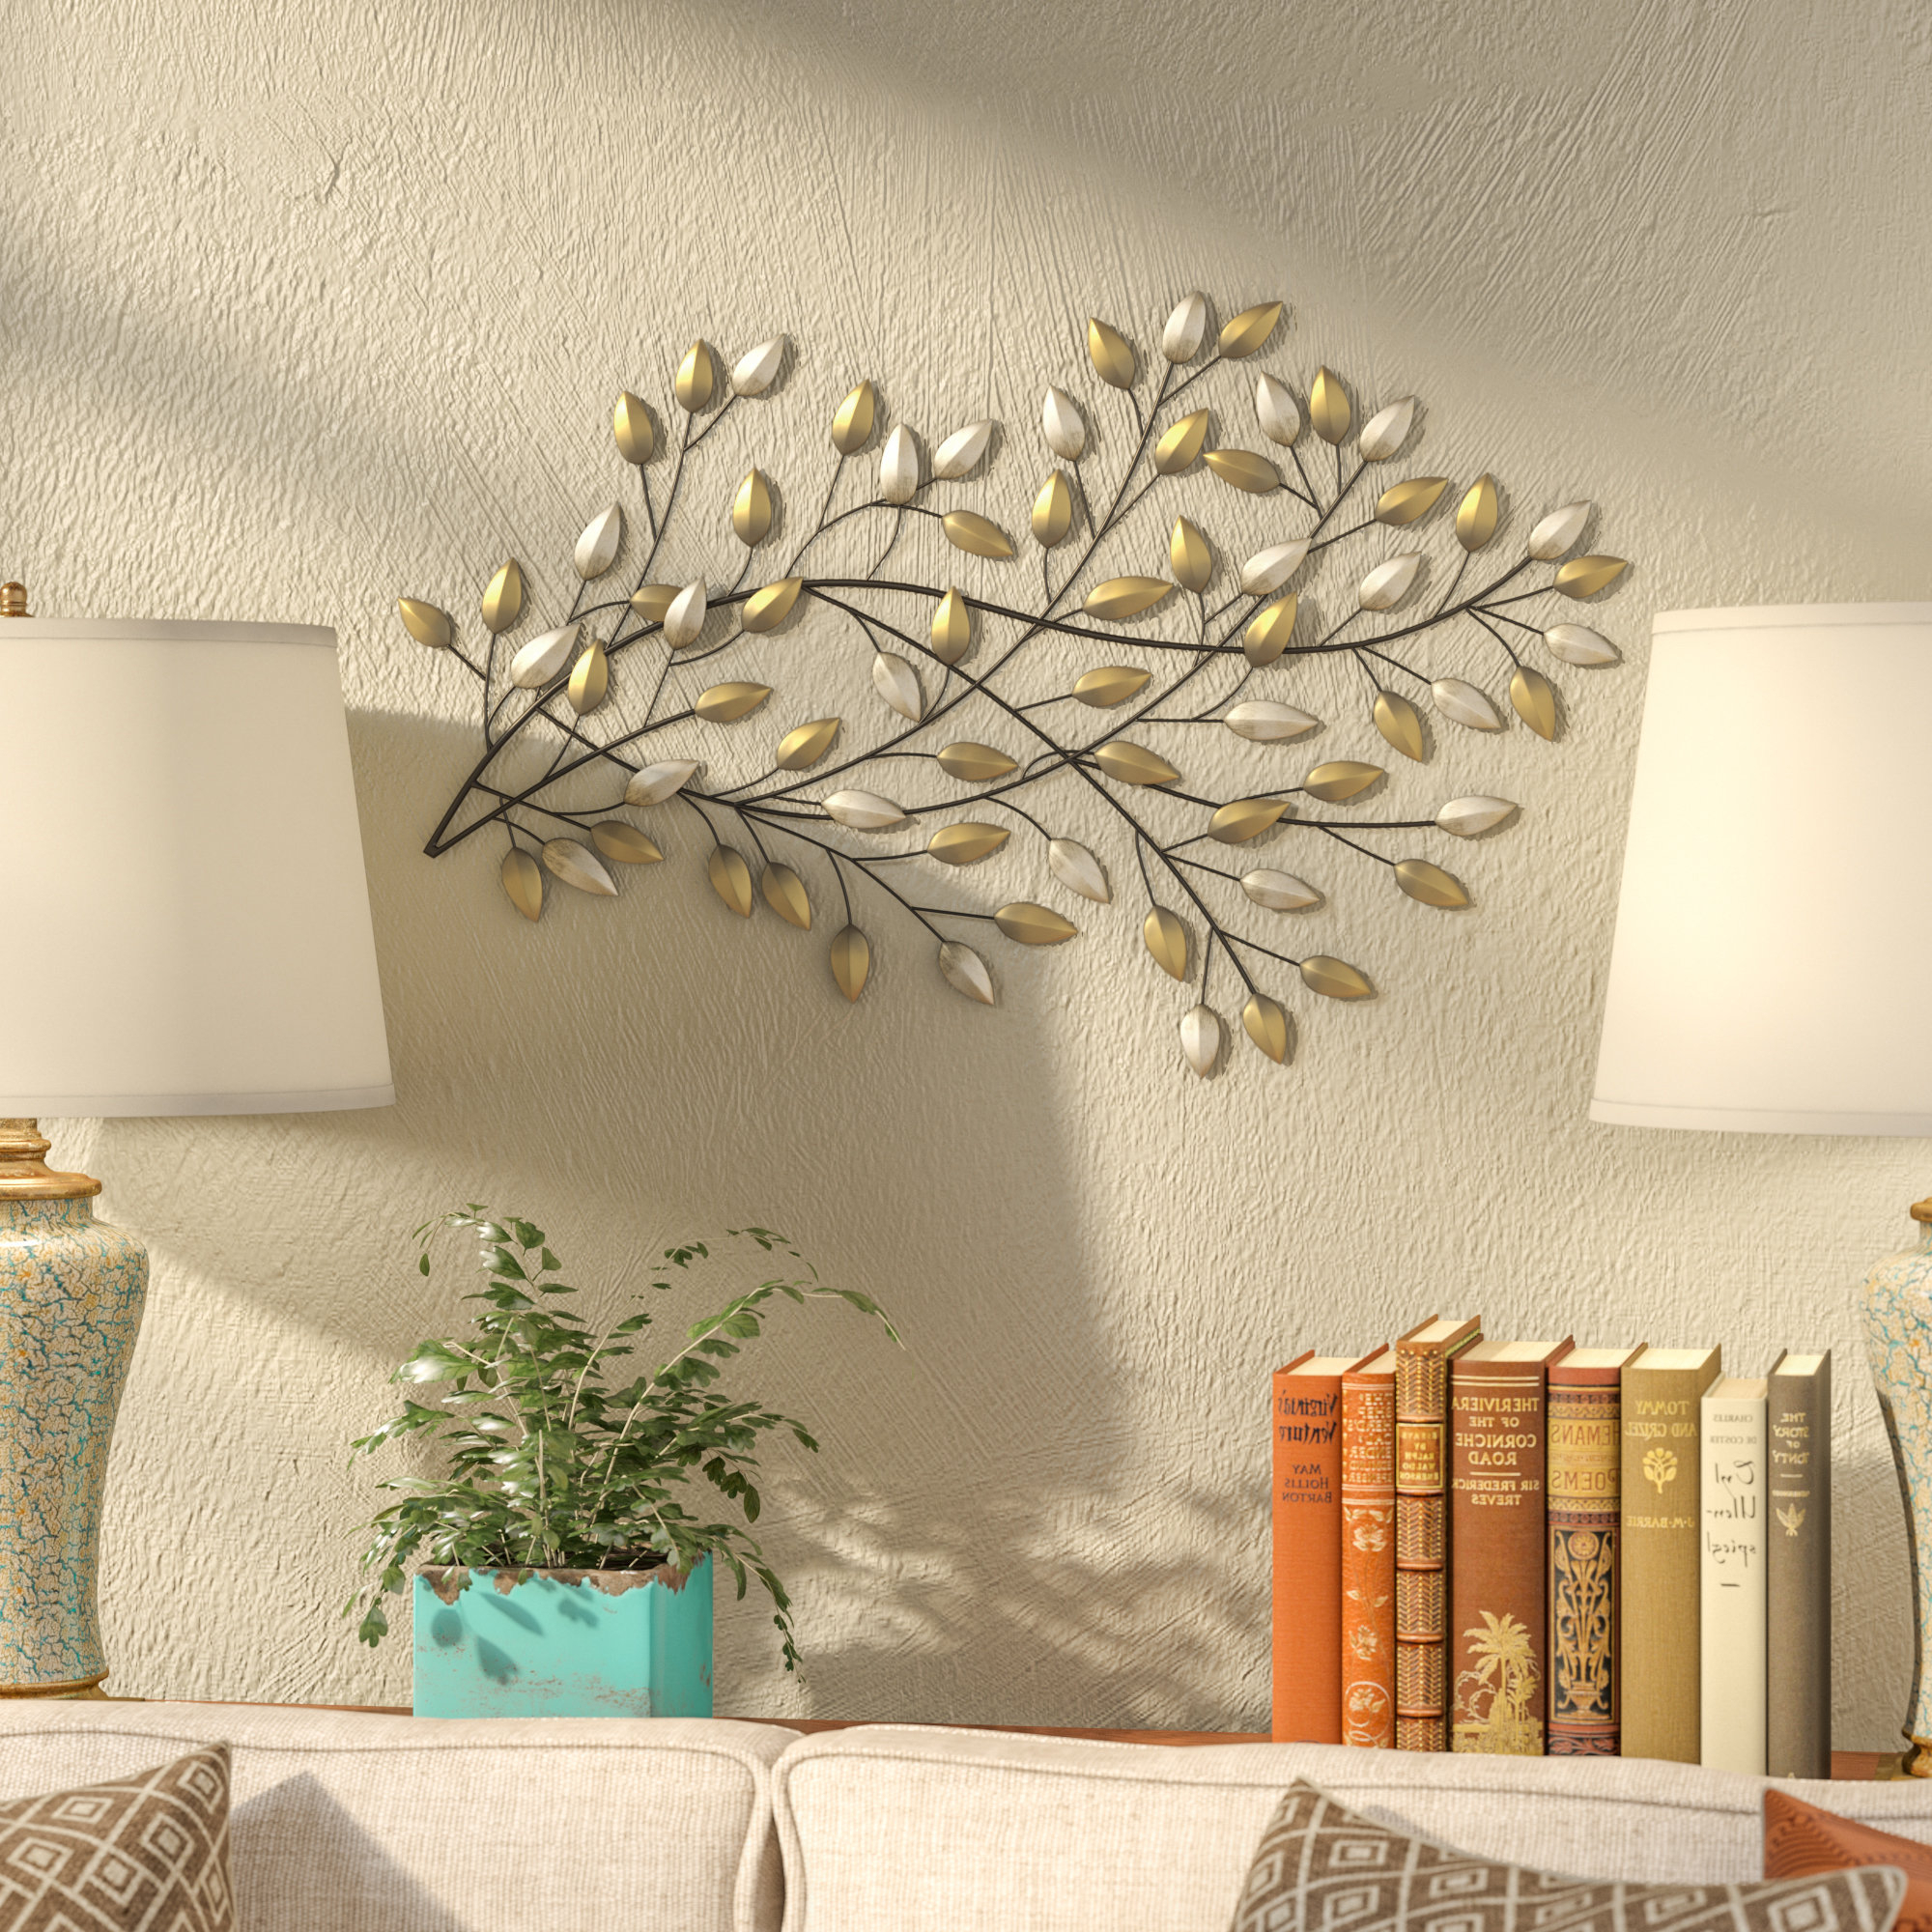 2020 Blowing Leaves Wall Decor Throughout Fleur De Lis Living Blowing Leaves Wall Décor & Reviews (Gallery 1 of 20)